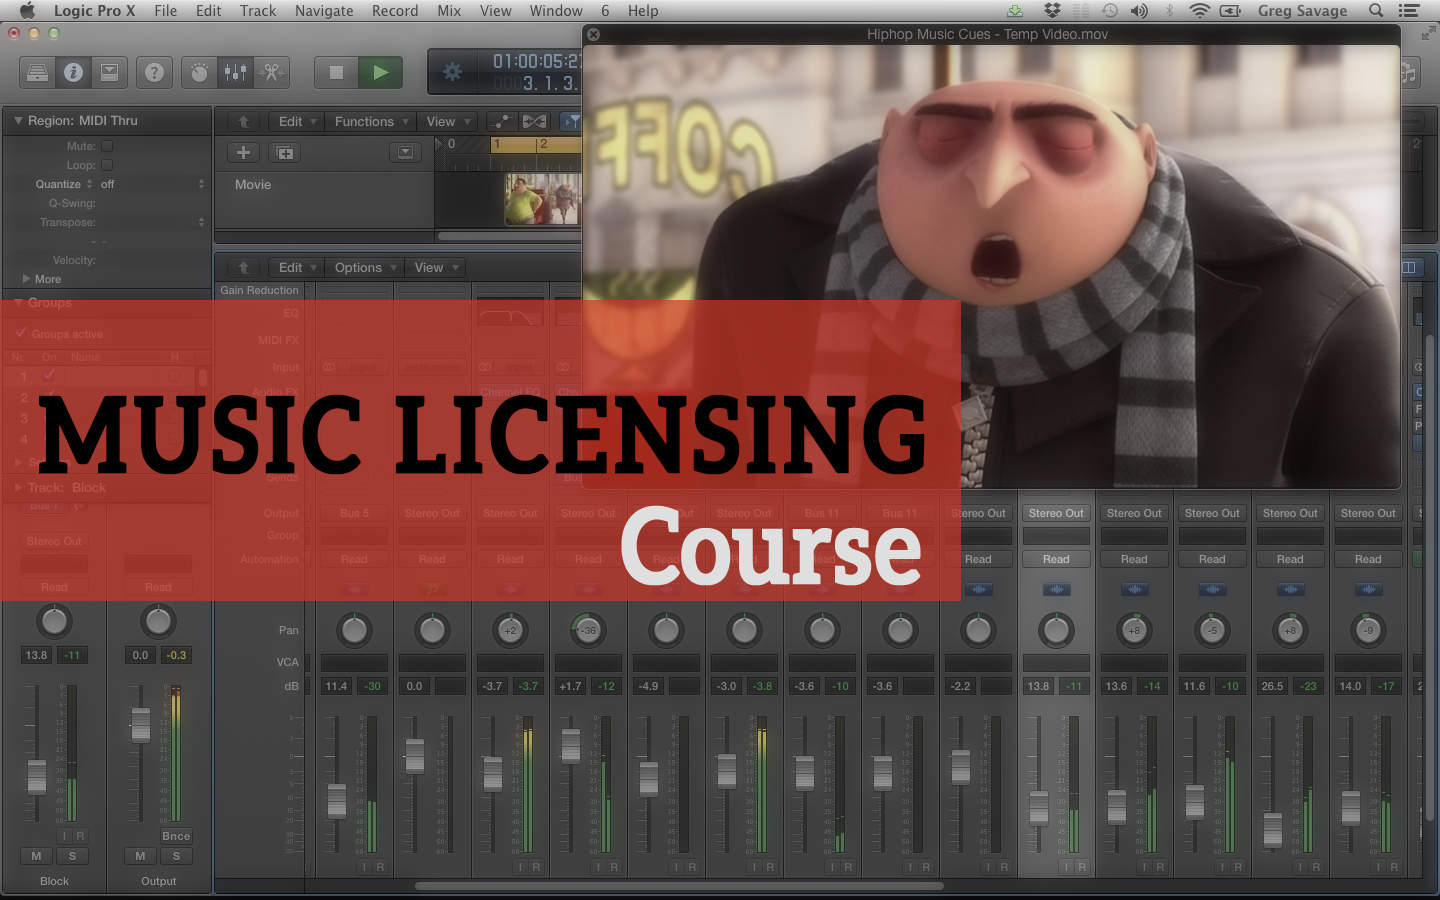 Music Licensing Course: Get Your Existing Tracks Placed In TV/Film